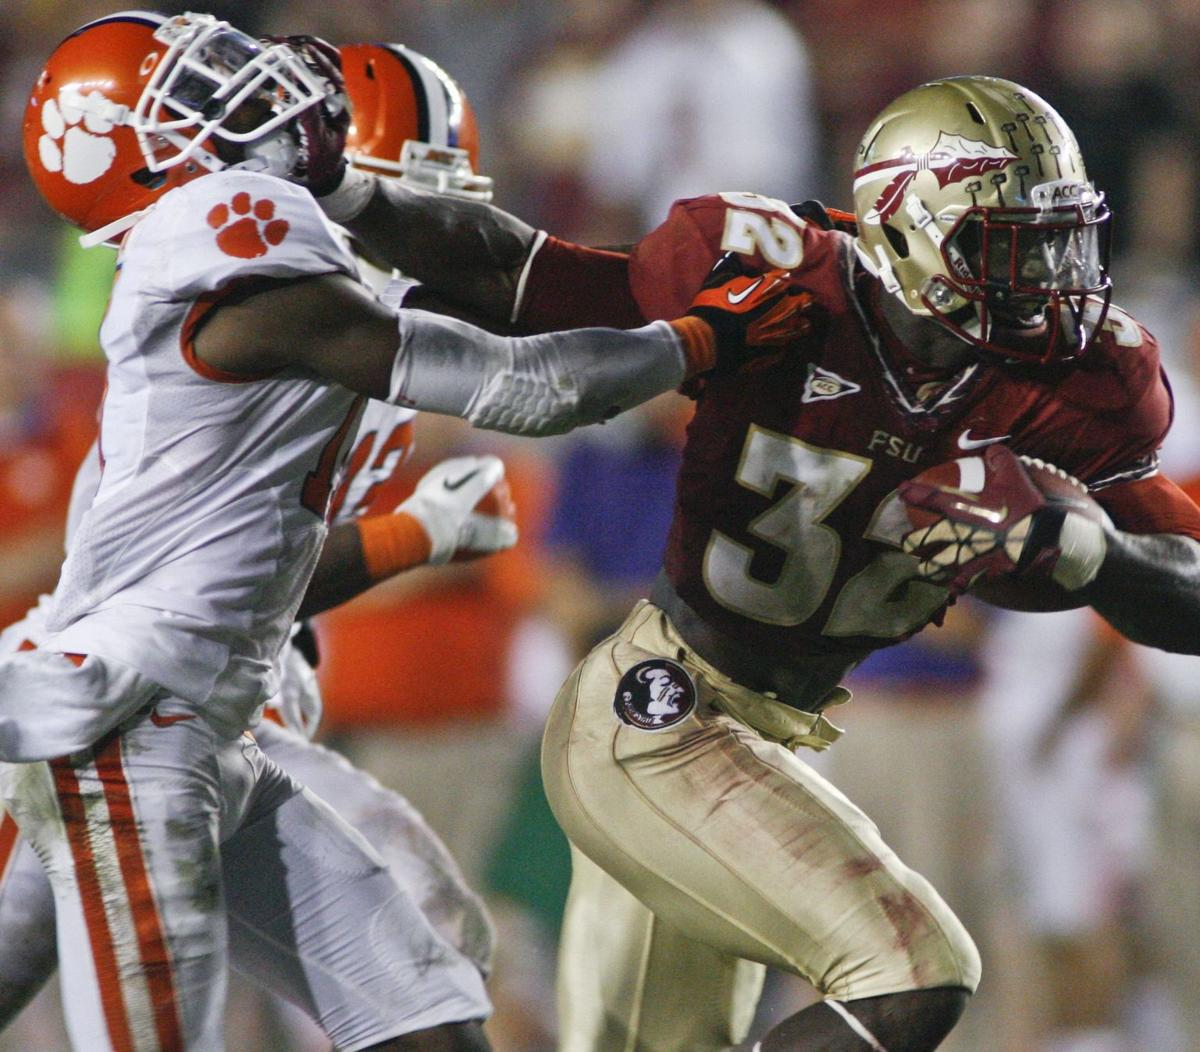 Florida State storms past Clemson in second half